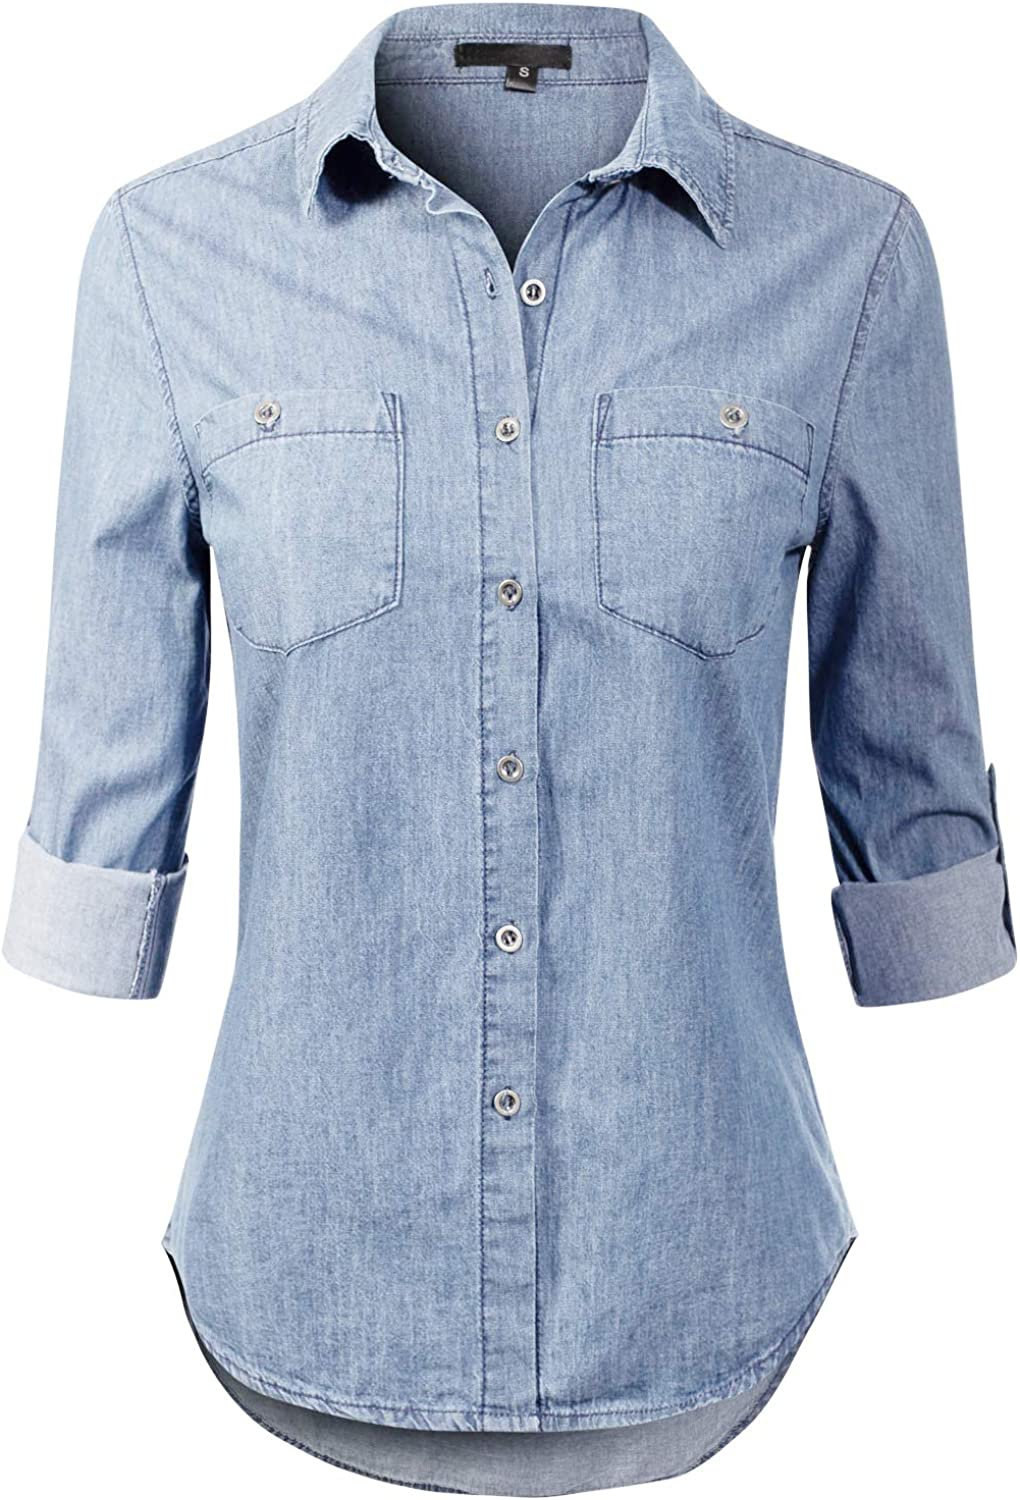 Design by Olivia Women's Basic Classic Roll up Sleeve Button Down Chambray Denim Shirt: Clothing